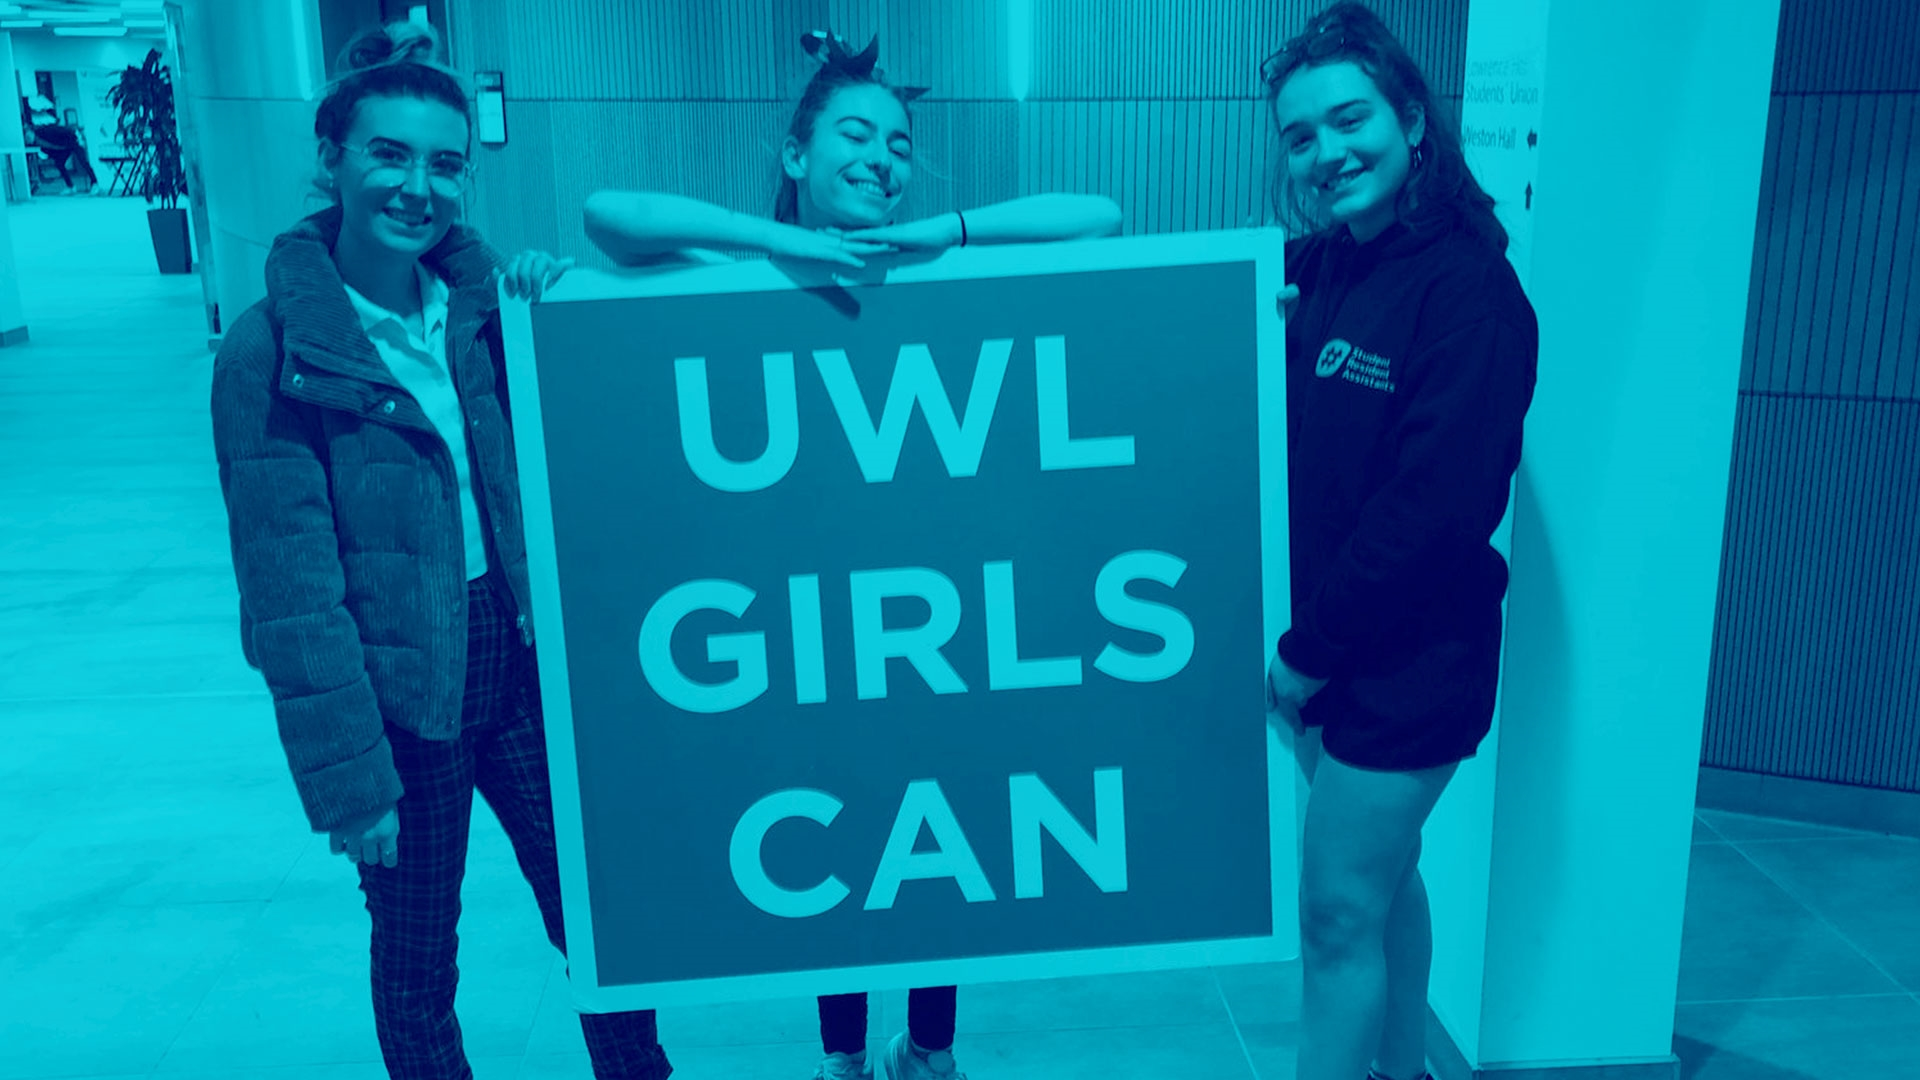 Student Group holding UWL Girls Can sign